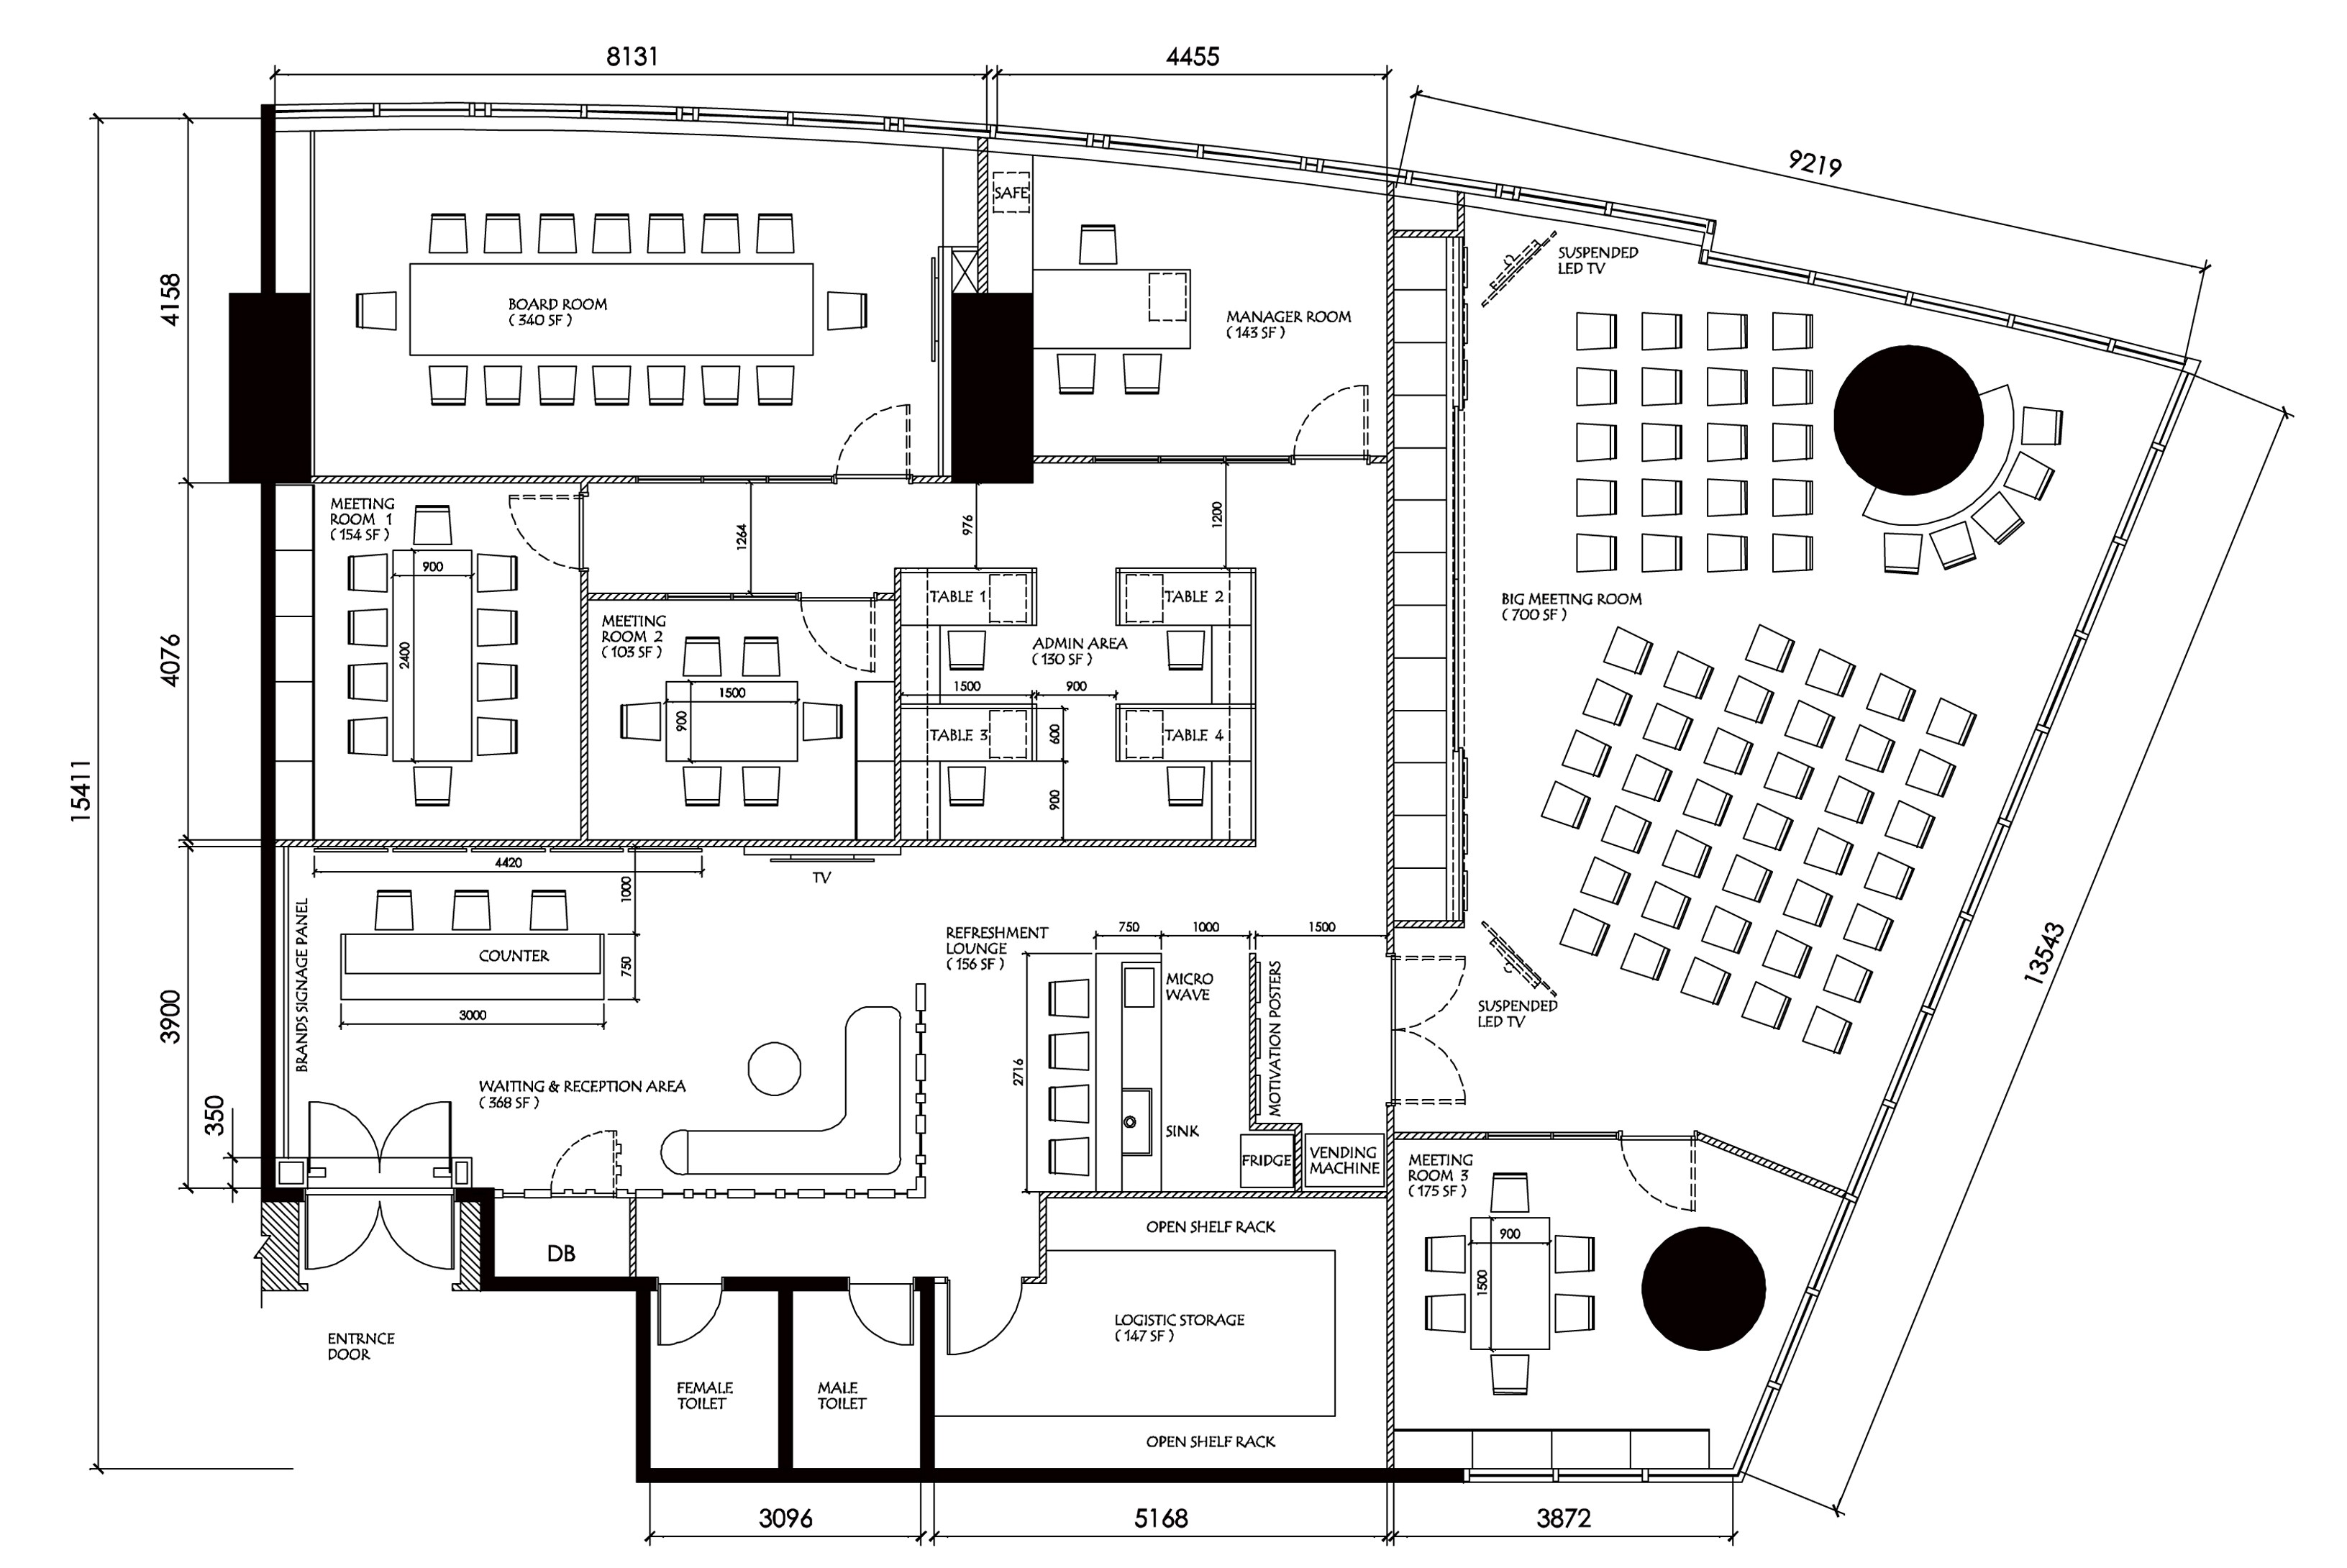 Furniture Layout Plan » Fabron Design   Interior Design Drawings Service  Online